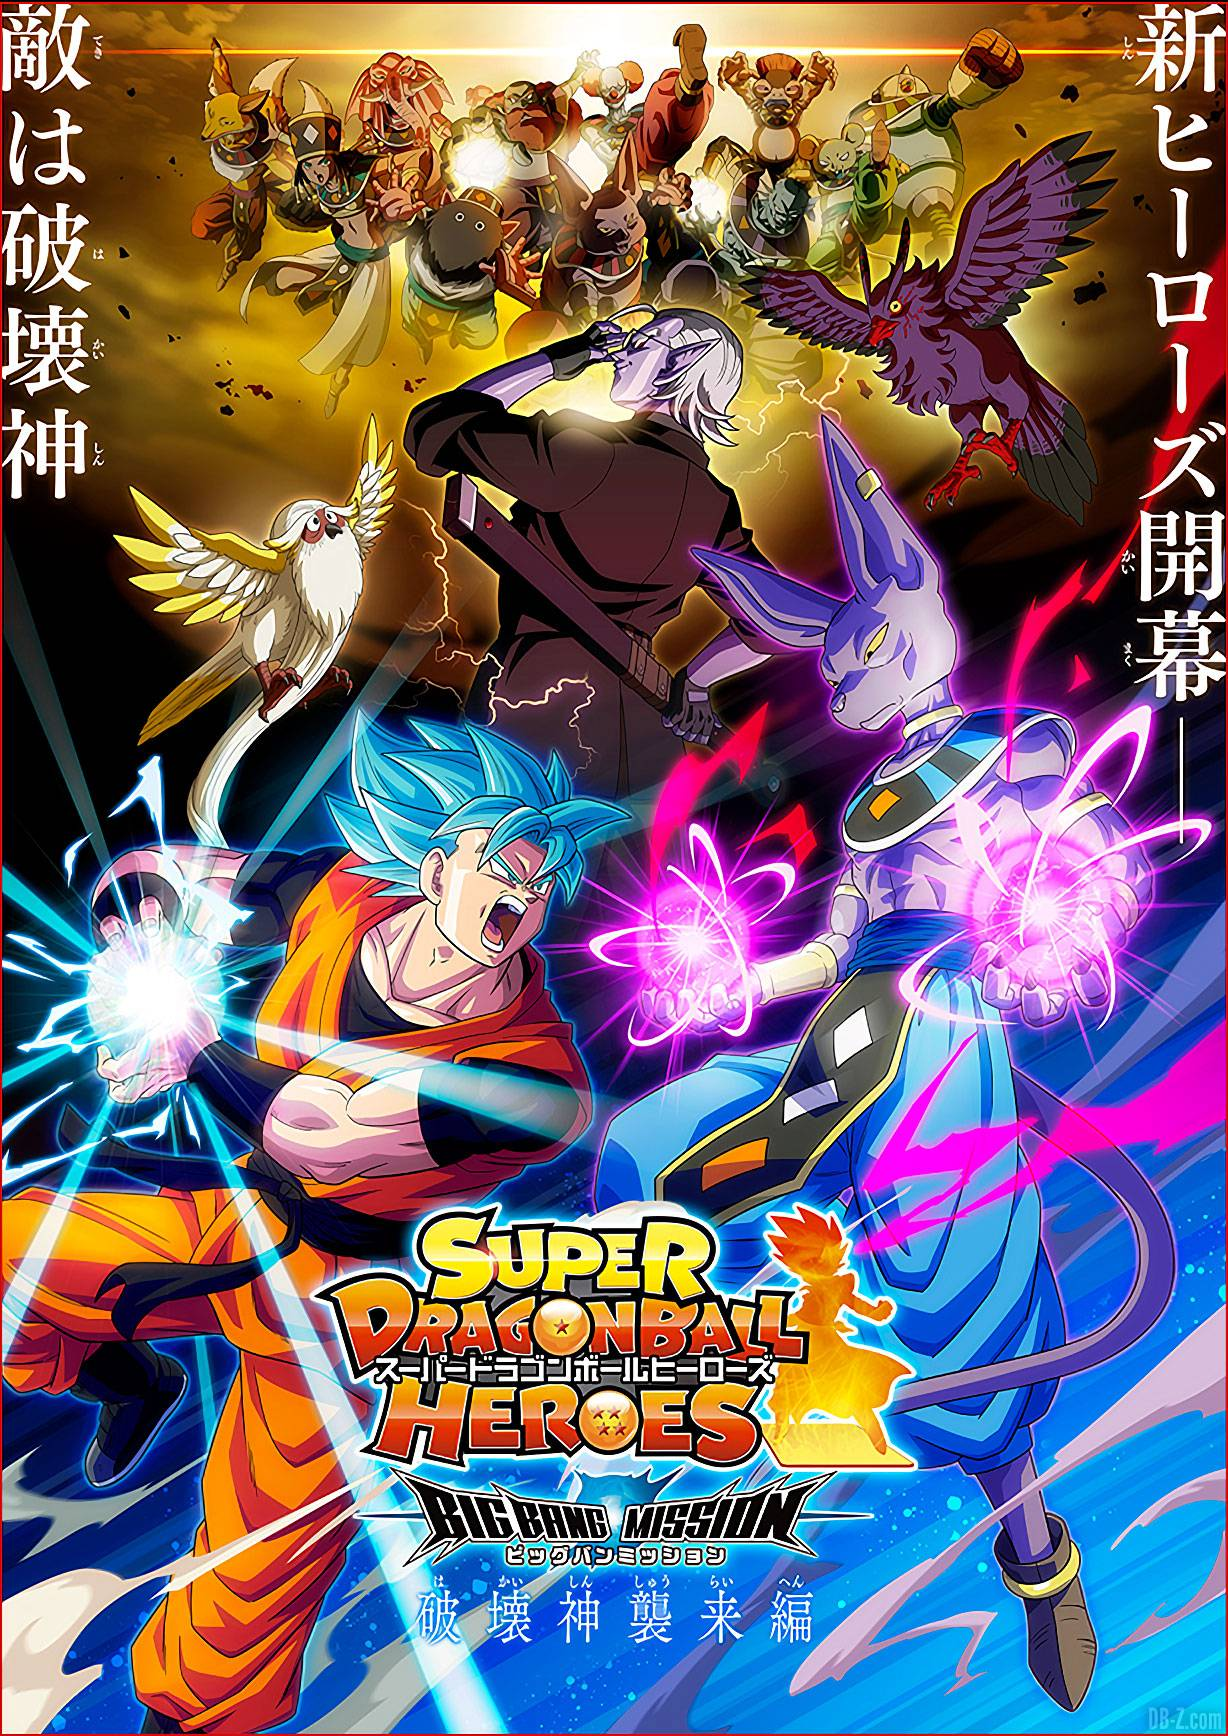 Super Dragon Ball Heroes: Big Bang Mission episode 12